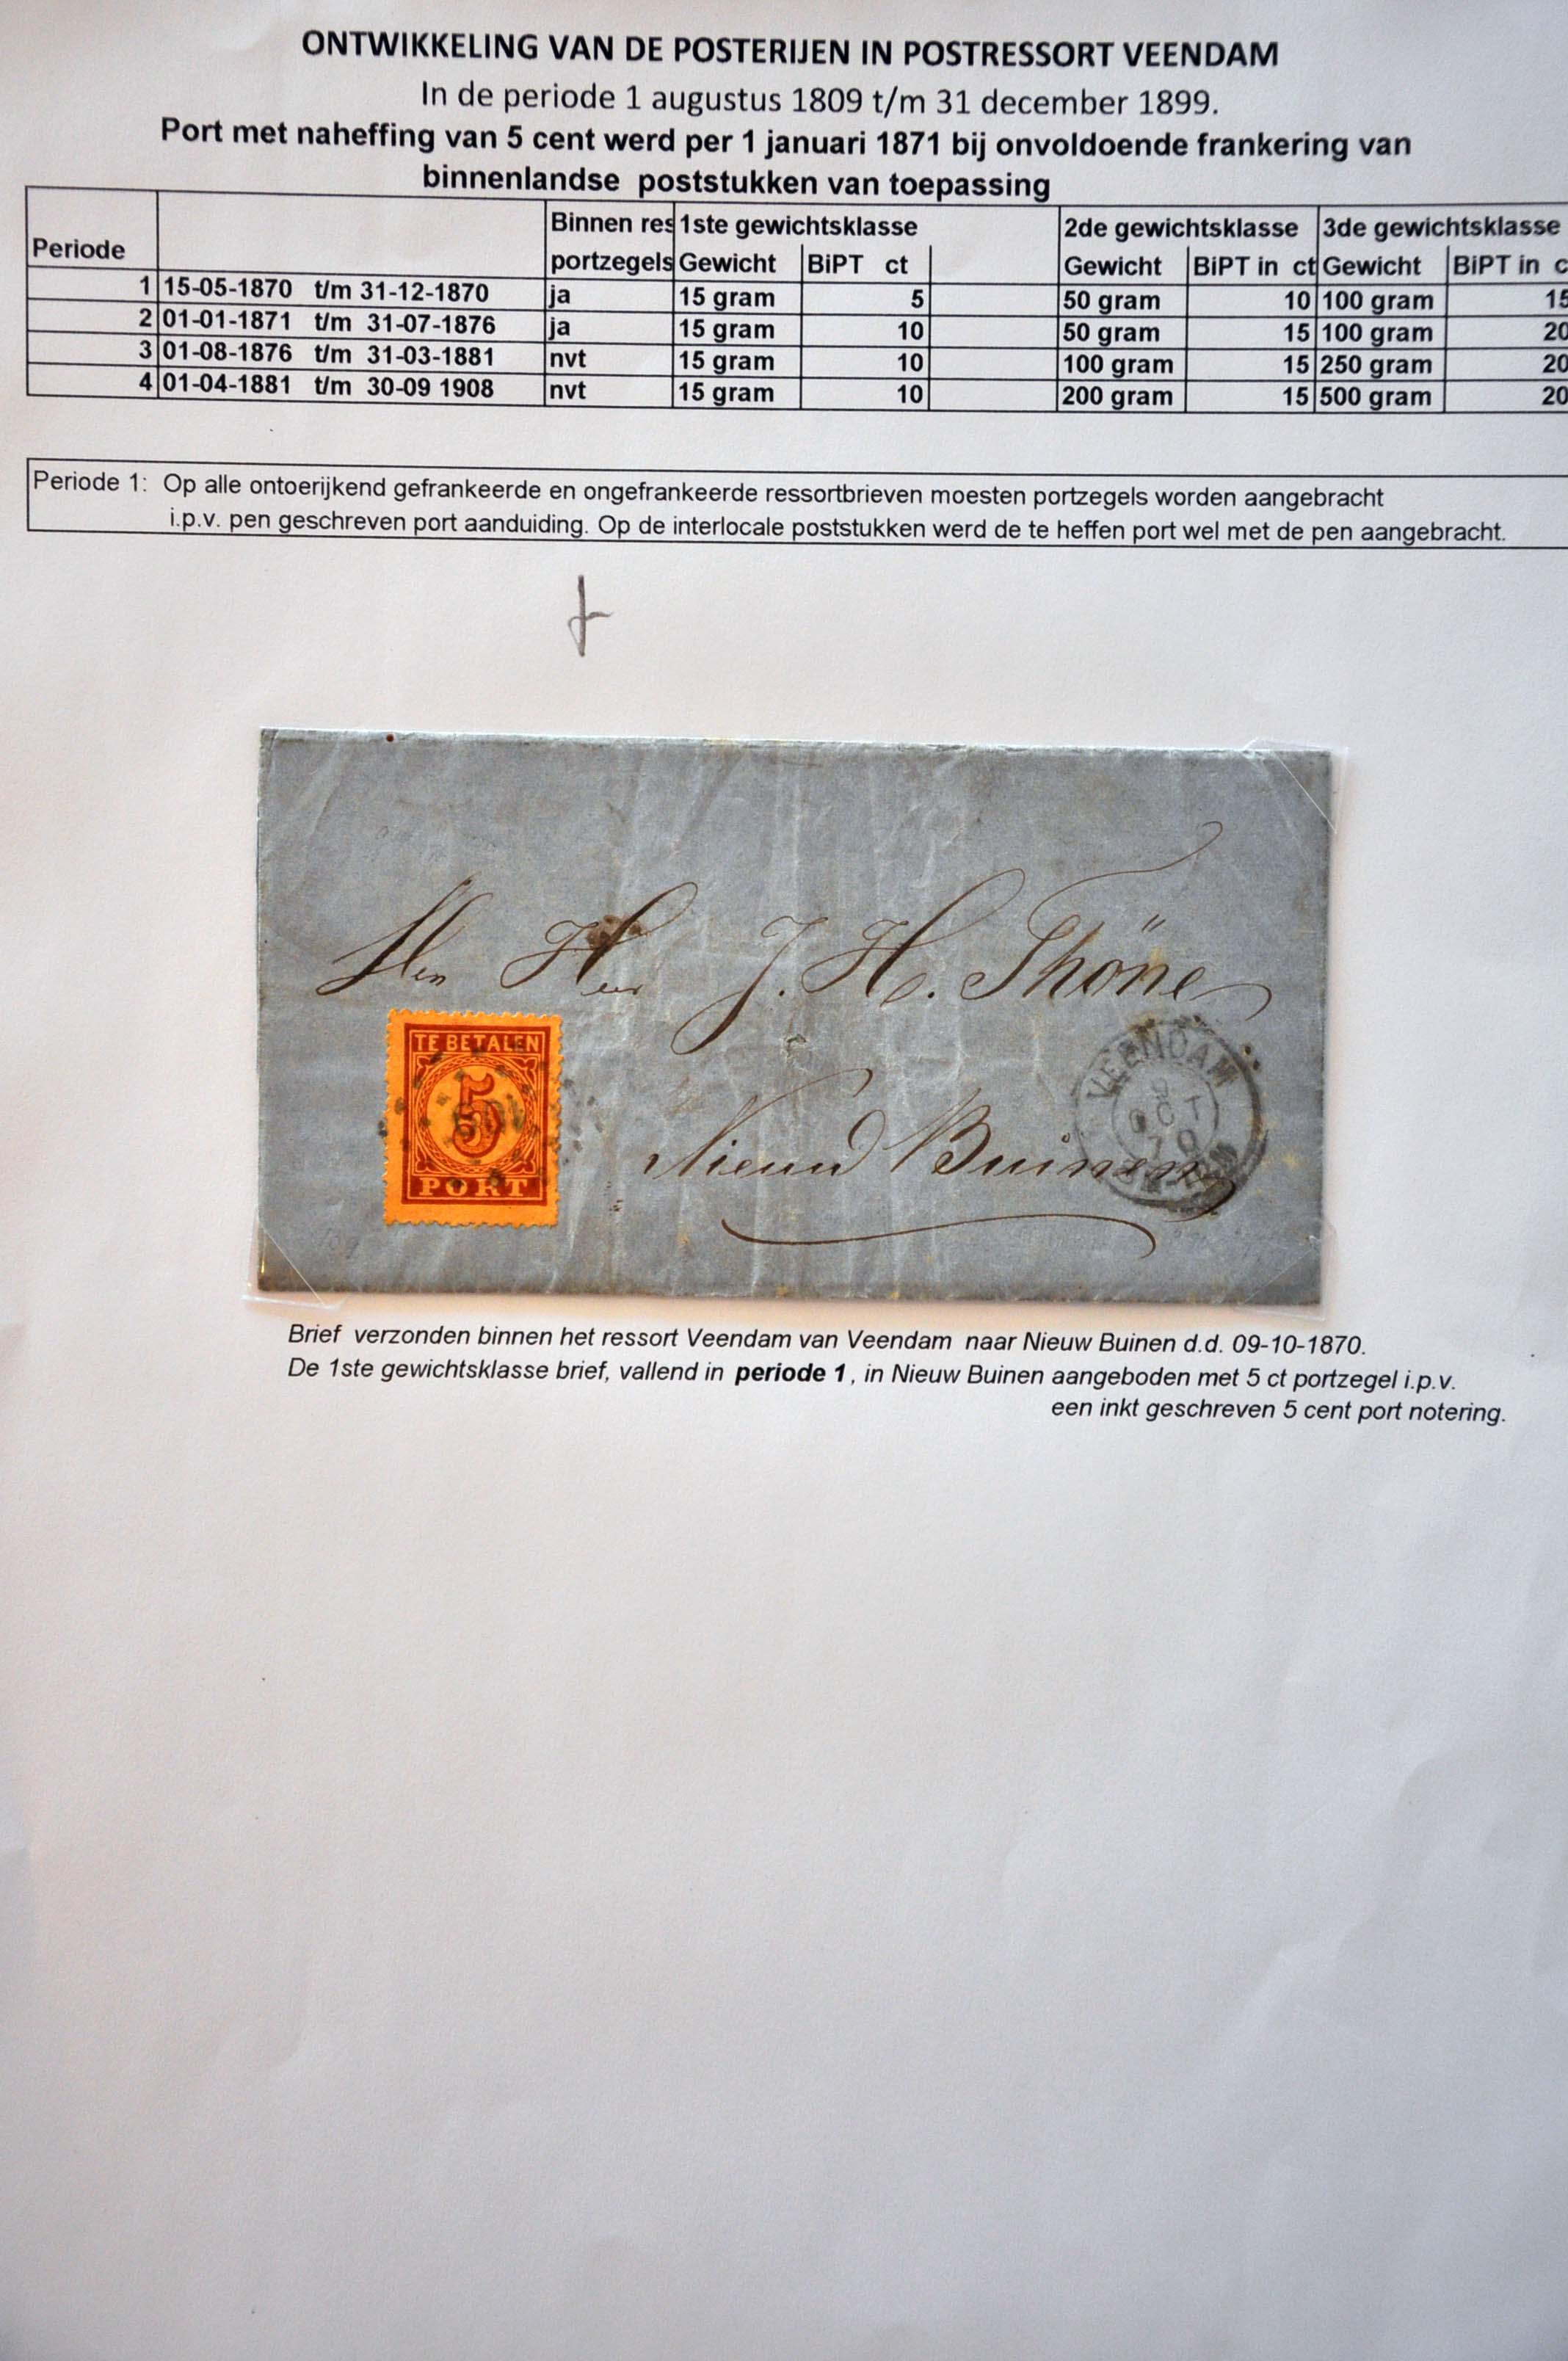 Lot 2549 - Netherlands and former colonies Netherlands -  Corinphila Veilingen Auction 245-246 Day 3 - Netherlands and former colonies - Single lots, Collections and lots, Boxes and literature